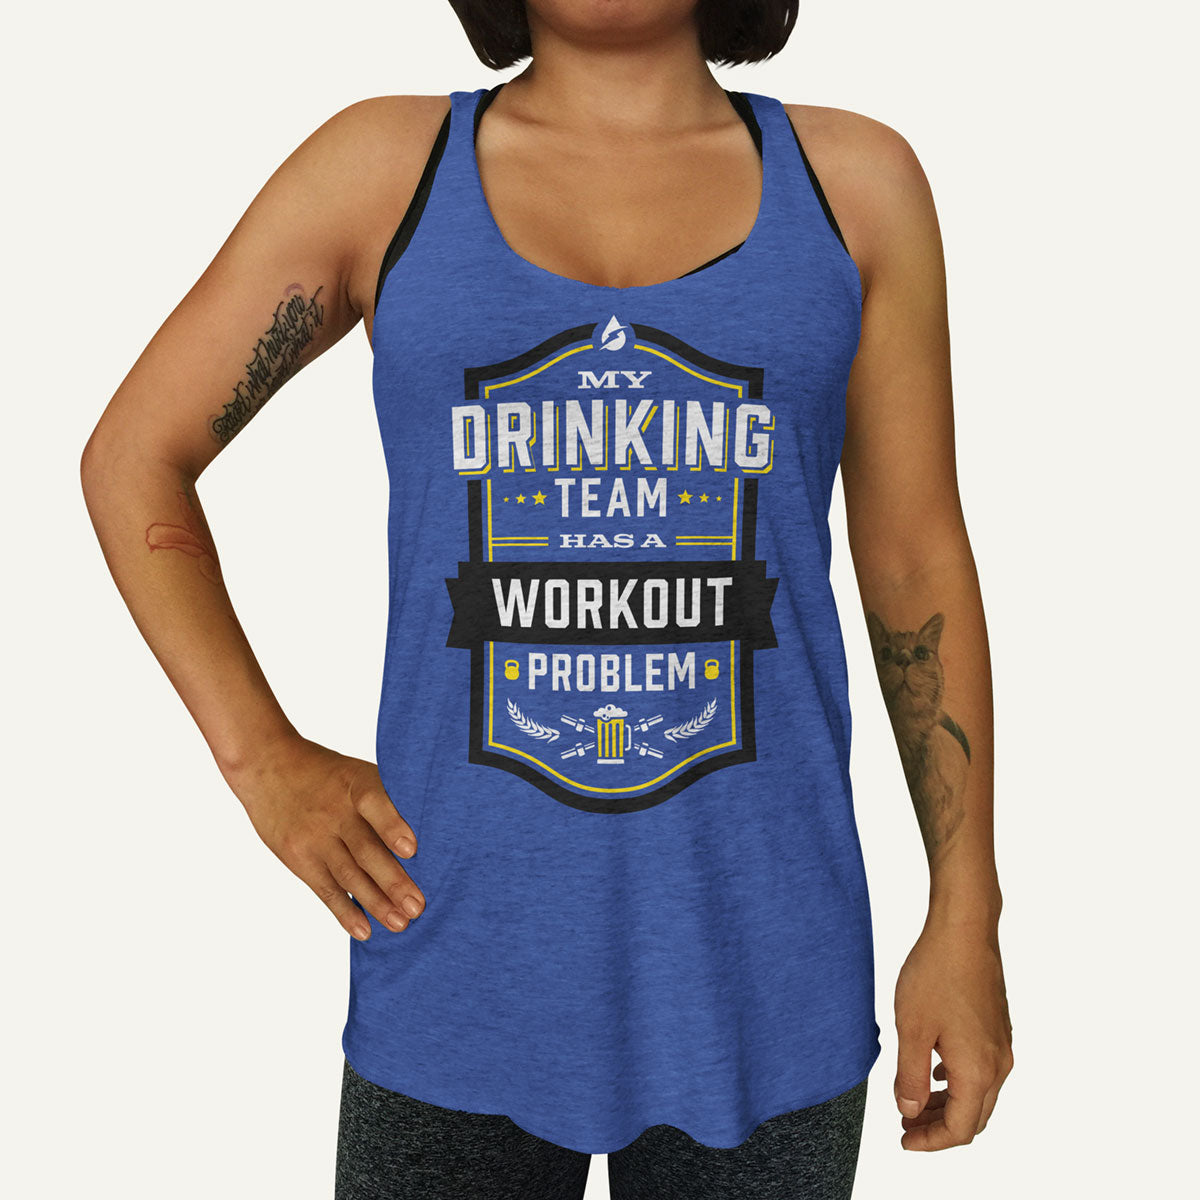 f12ad667 My Drinking Team Has A Workout Problem Women's Tank Top